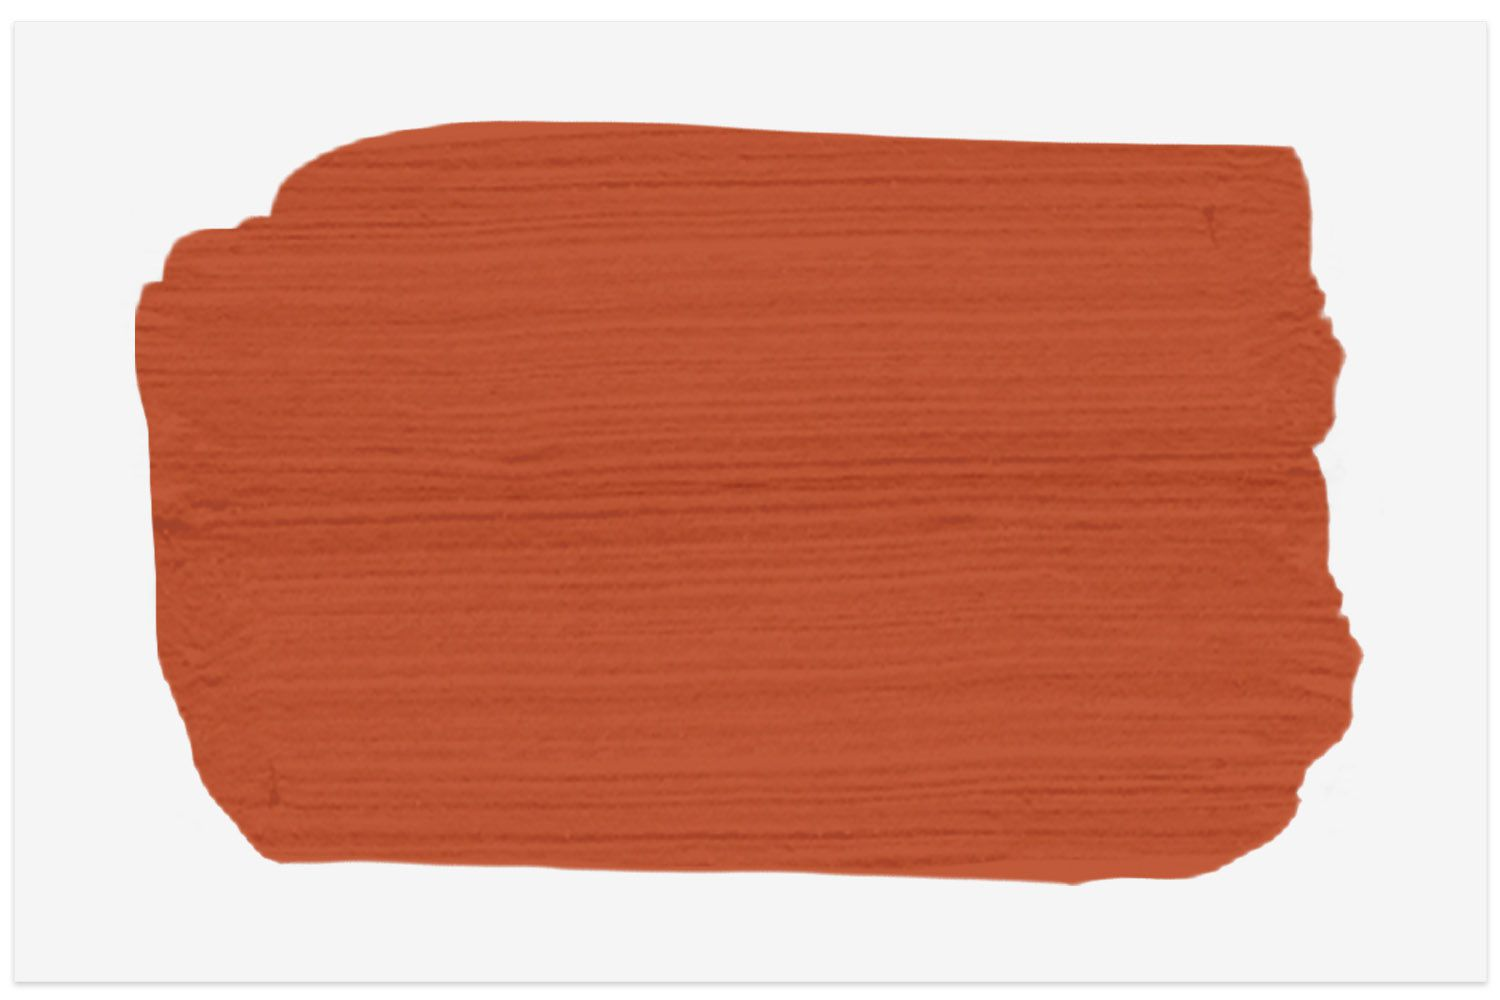 Tabasco paint swatch from PPG Paints